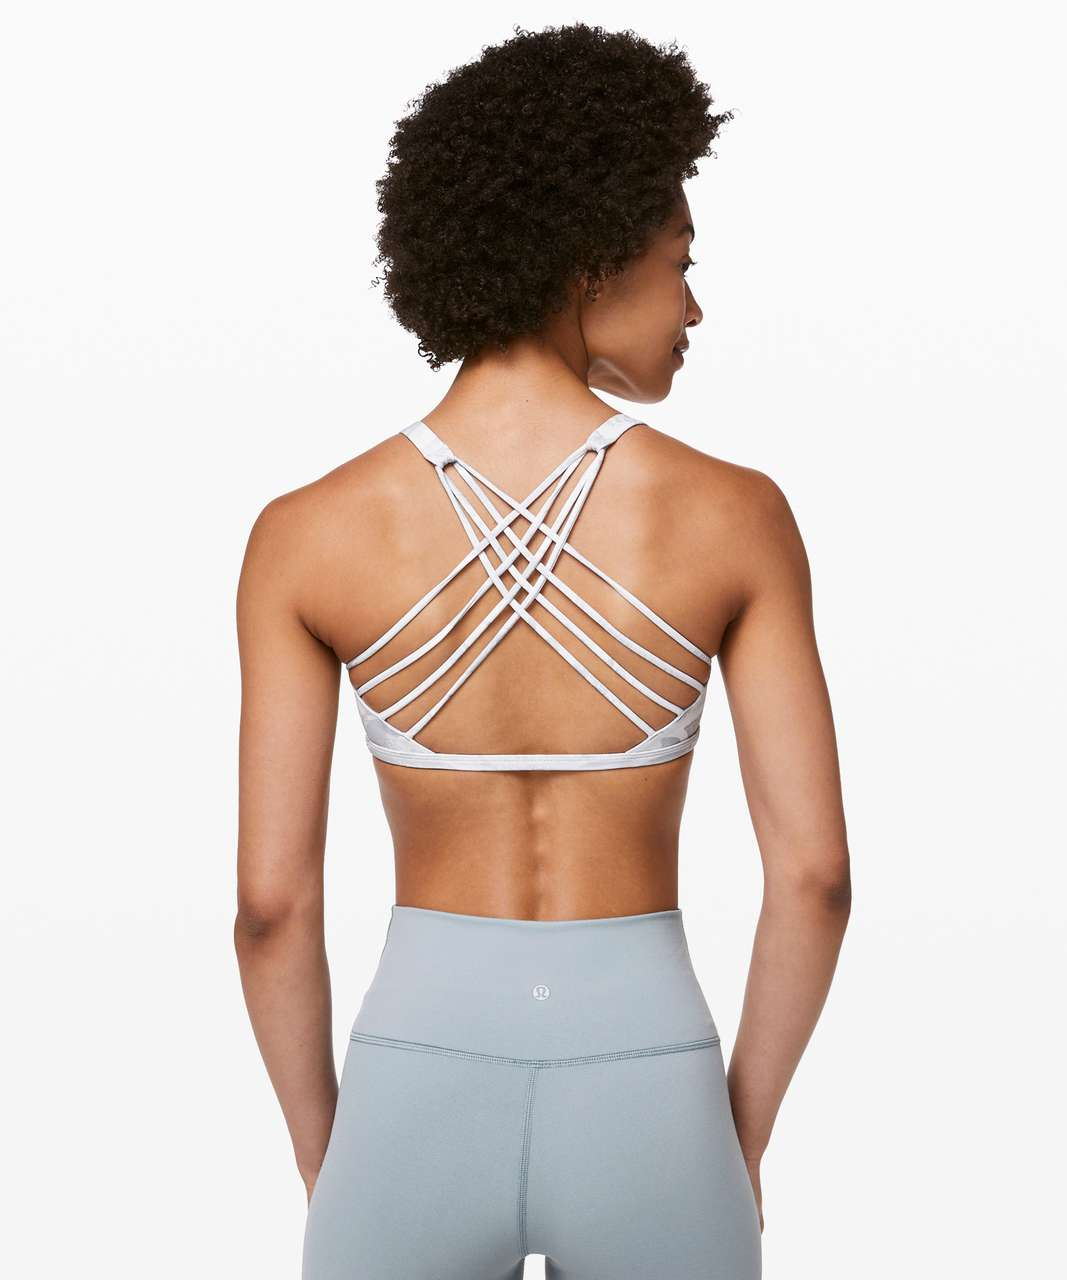 Lululemon Free To Be Bra (Wild) - Tropical Shadow Starlight Multi